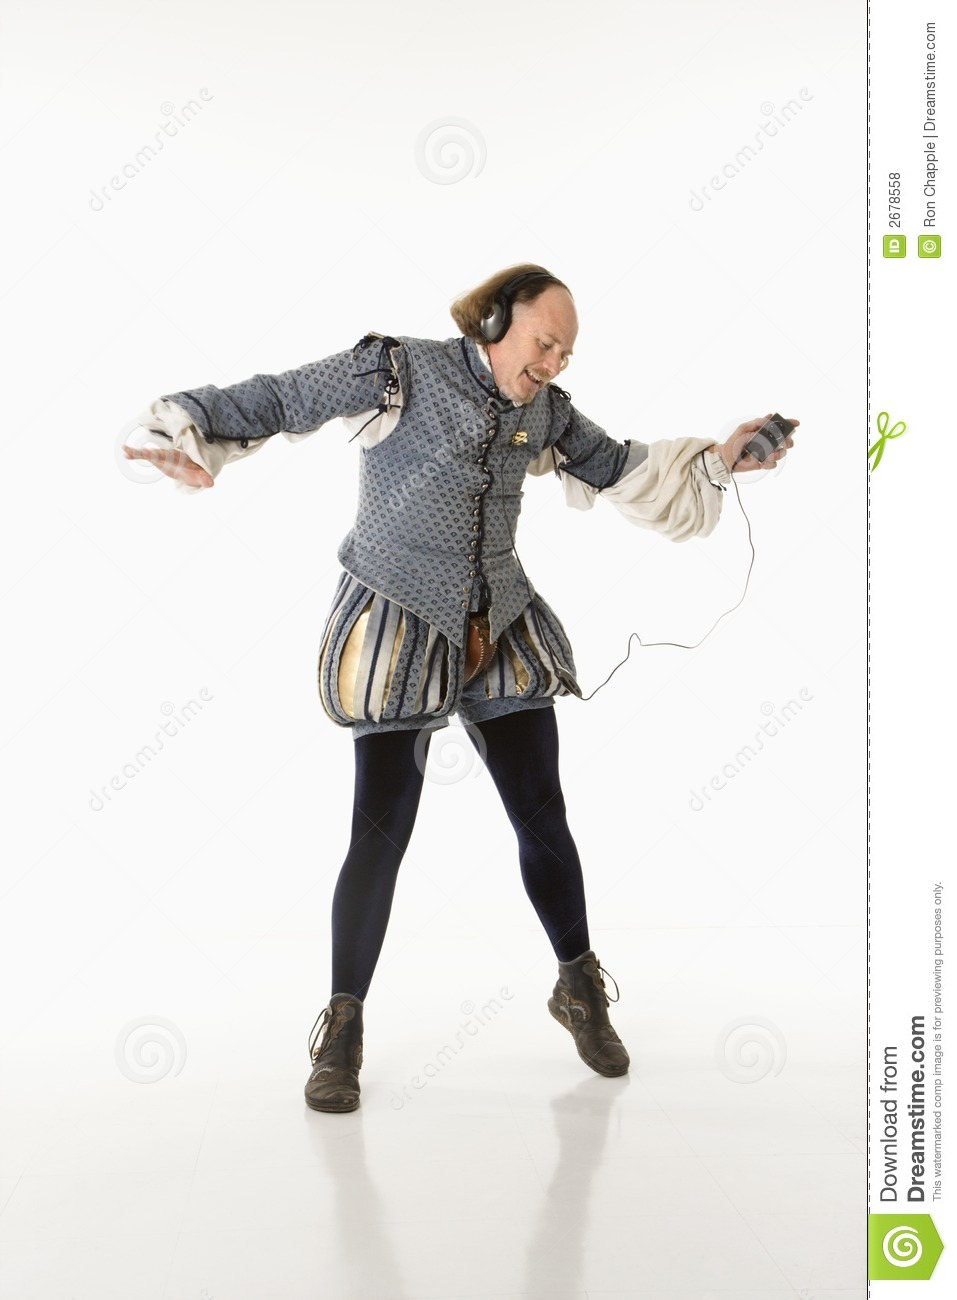 elizabethan life elizabethan dance The elizabethan era is a rich one for printed source materials it was an age   besides books of manners, books on dancing also have hints about deportment.